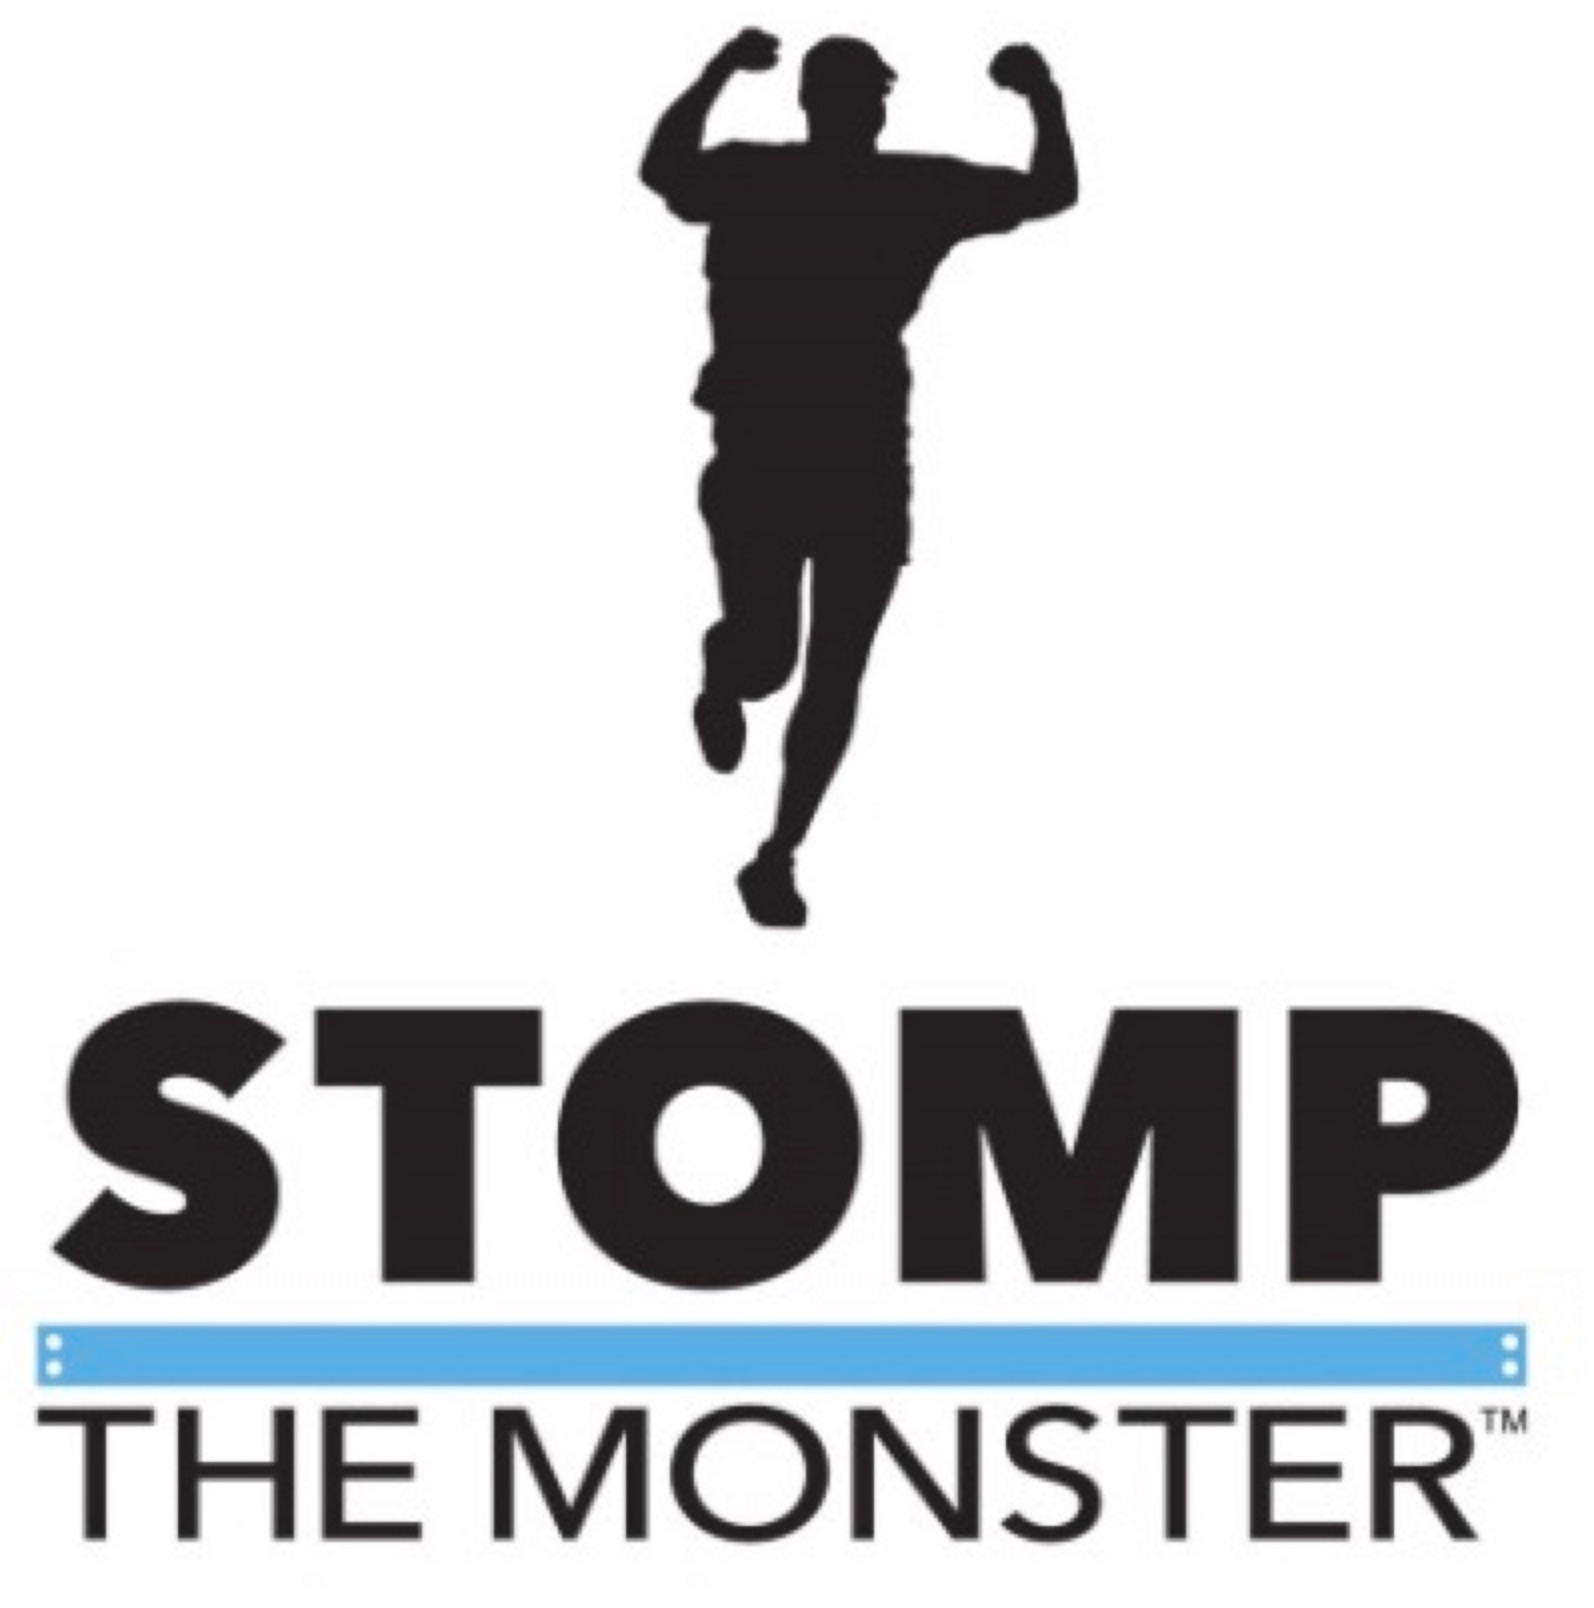 Stomp The Monster